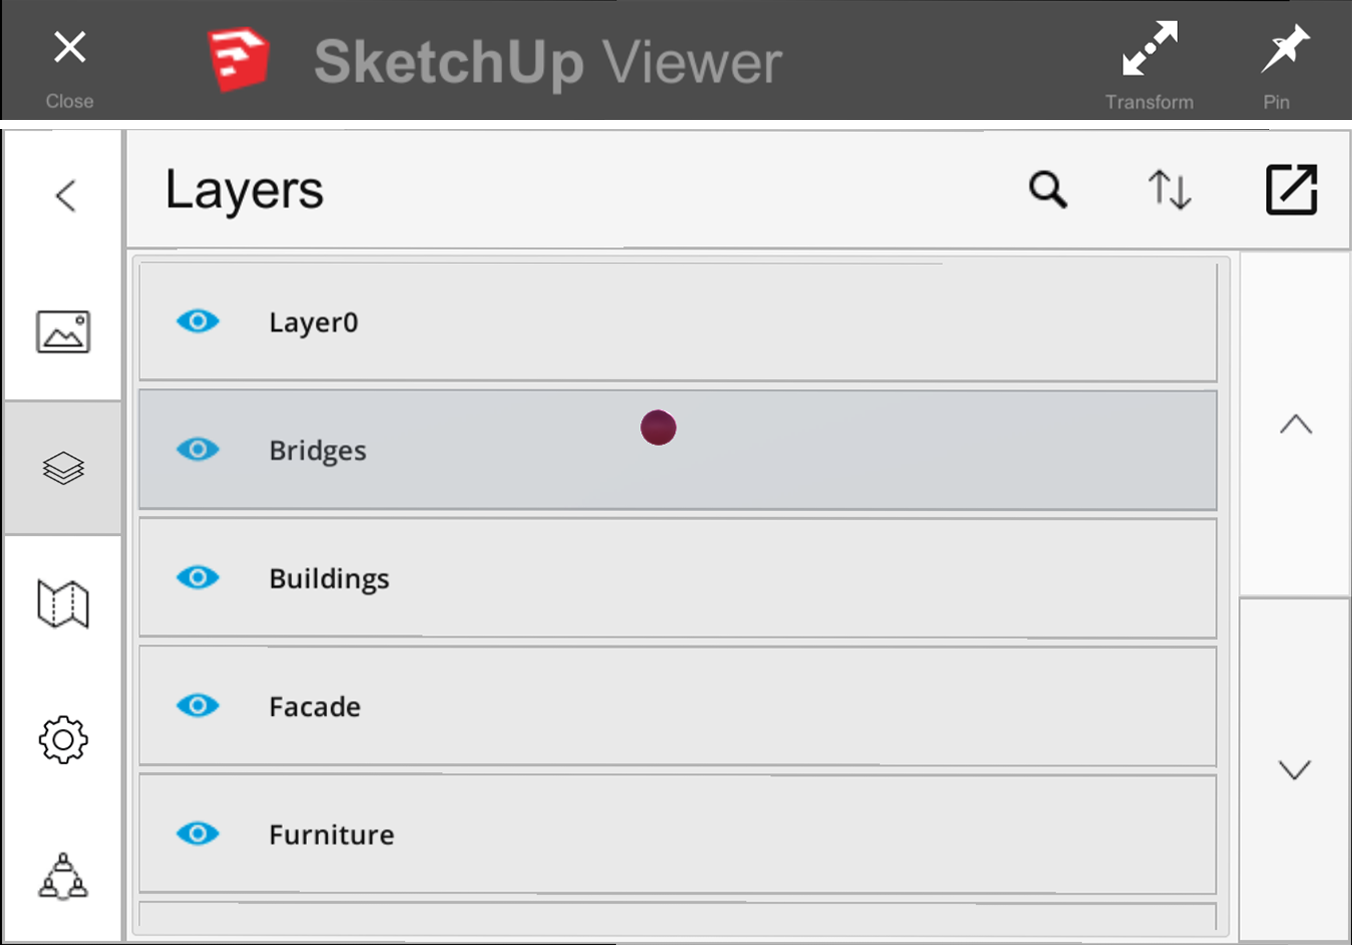 In SketchUp Viewer for HoloLens you can access model layers